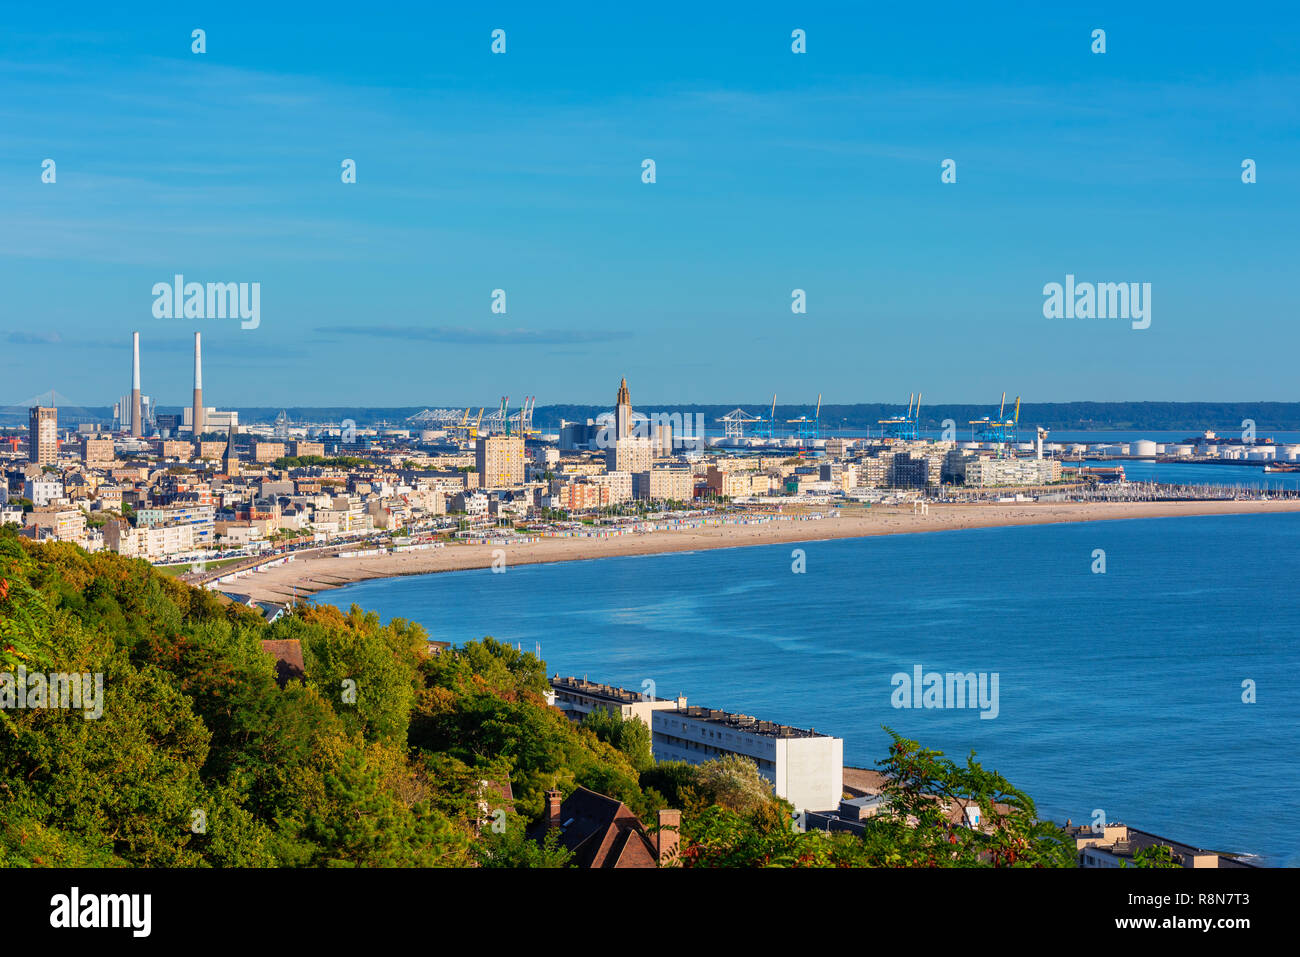 High angle view on the Skyline, Coastline and Harbor of Le Havre, Normandy, France - Stock Image